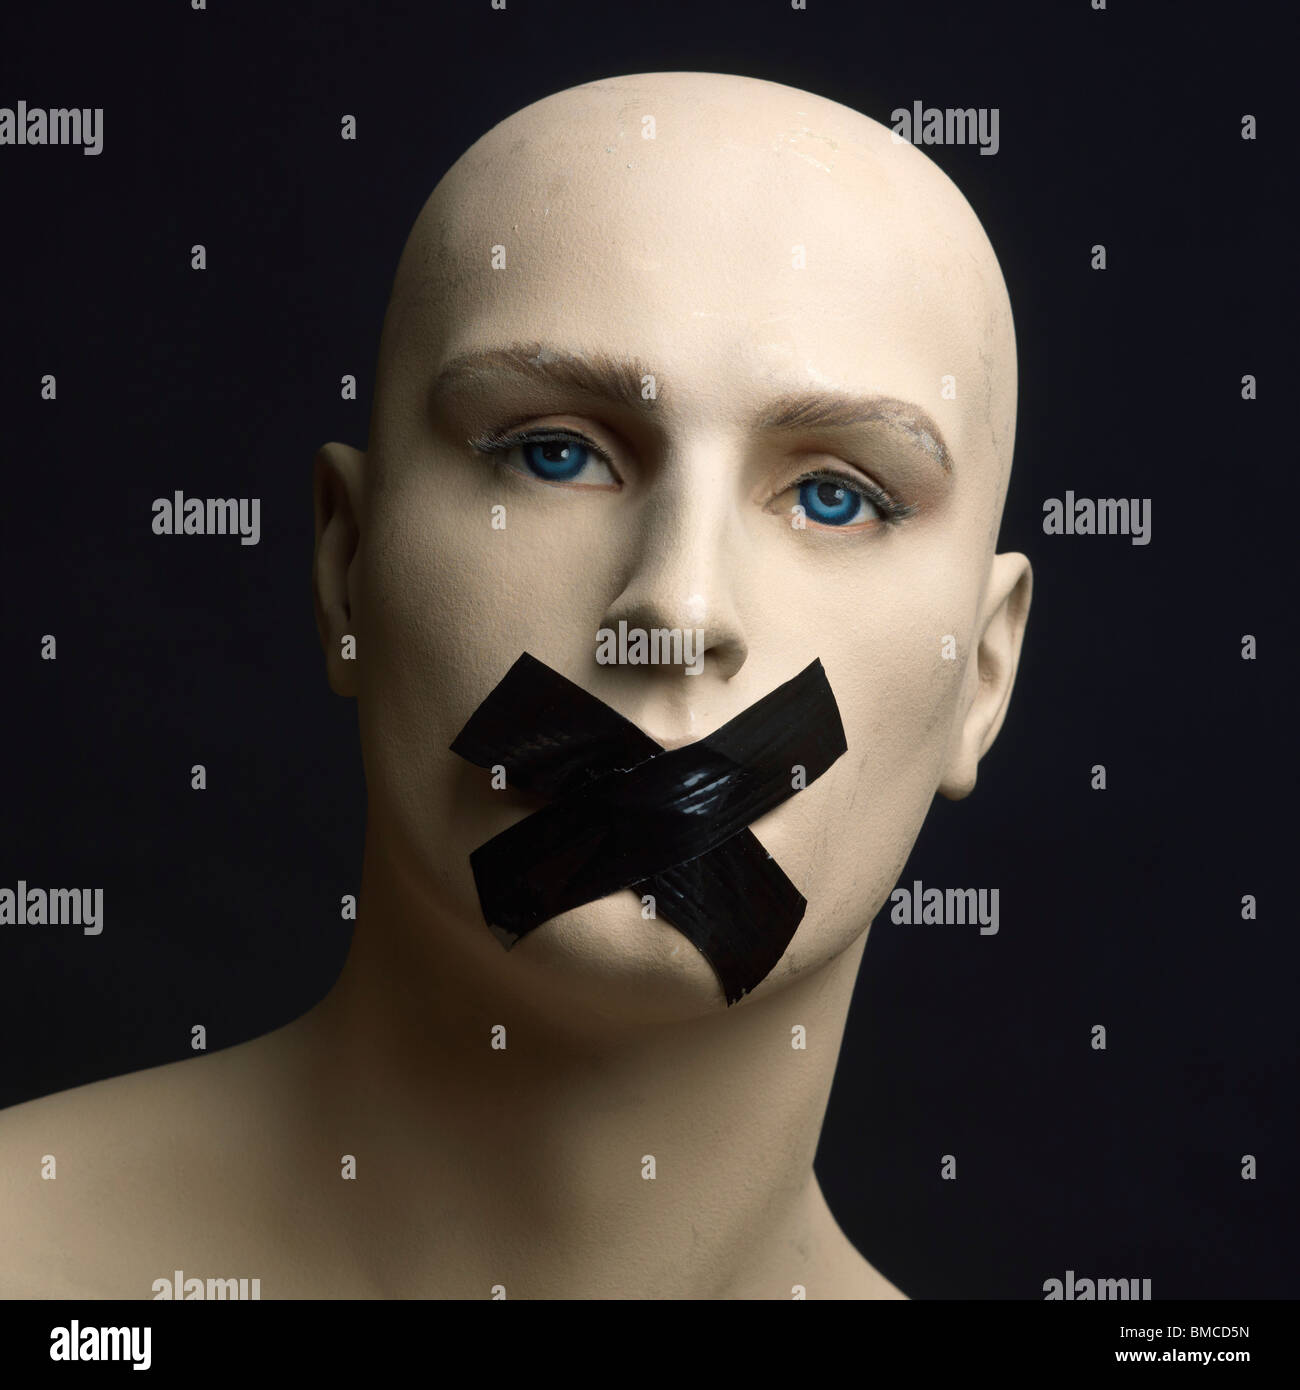 Mannequin, mannequin, ruban sur la bouche - censure / secret professionnel / bâilloner / silence / concept Photo Stock